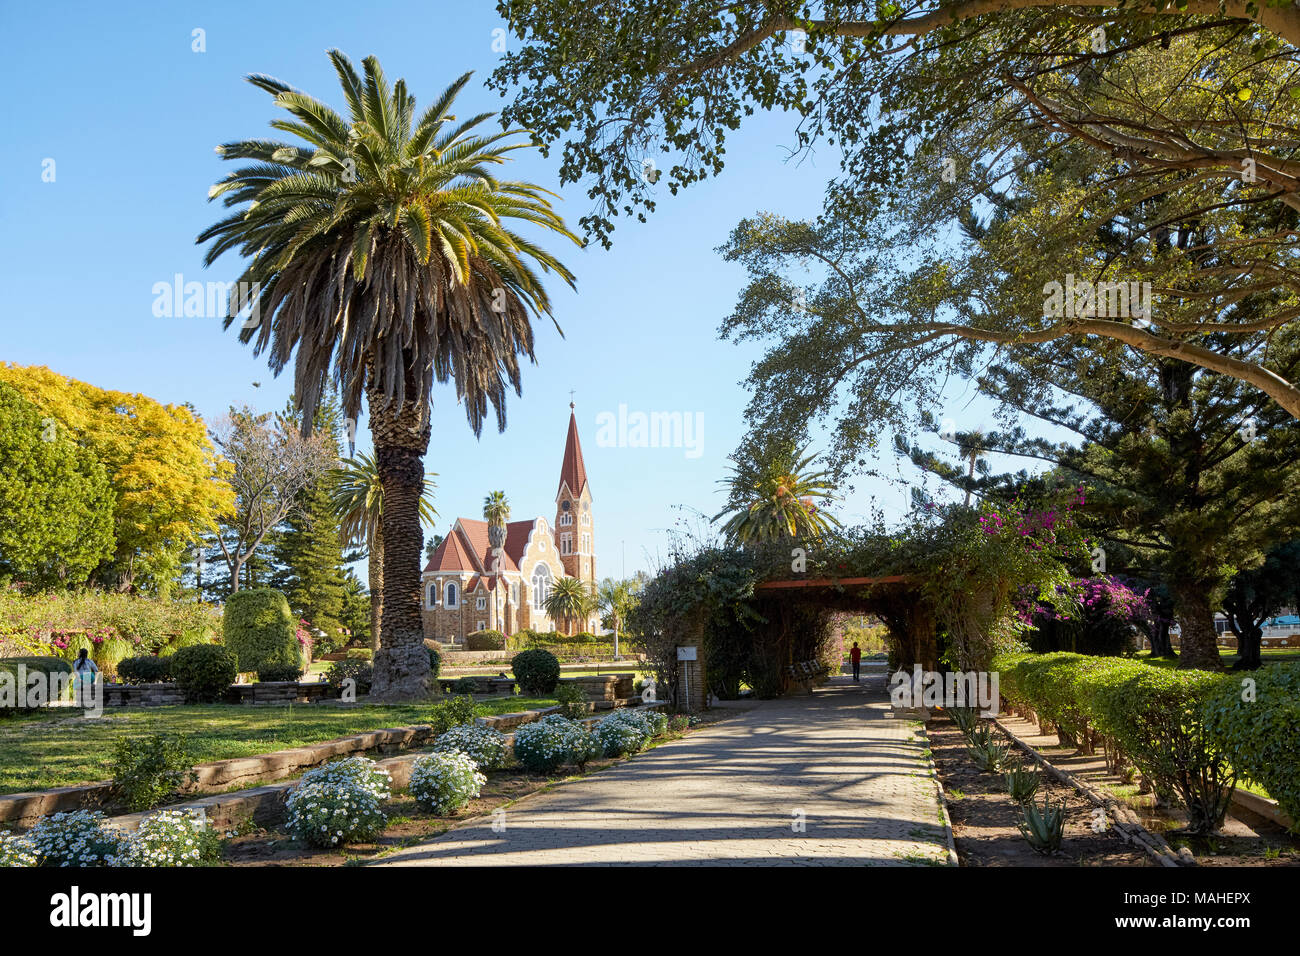 Parliament Garden and Christ Church (Christus Kirche) in WIndhoek, Nambia, Africa - Stock Image